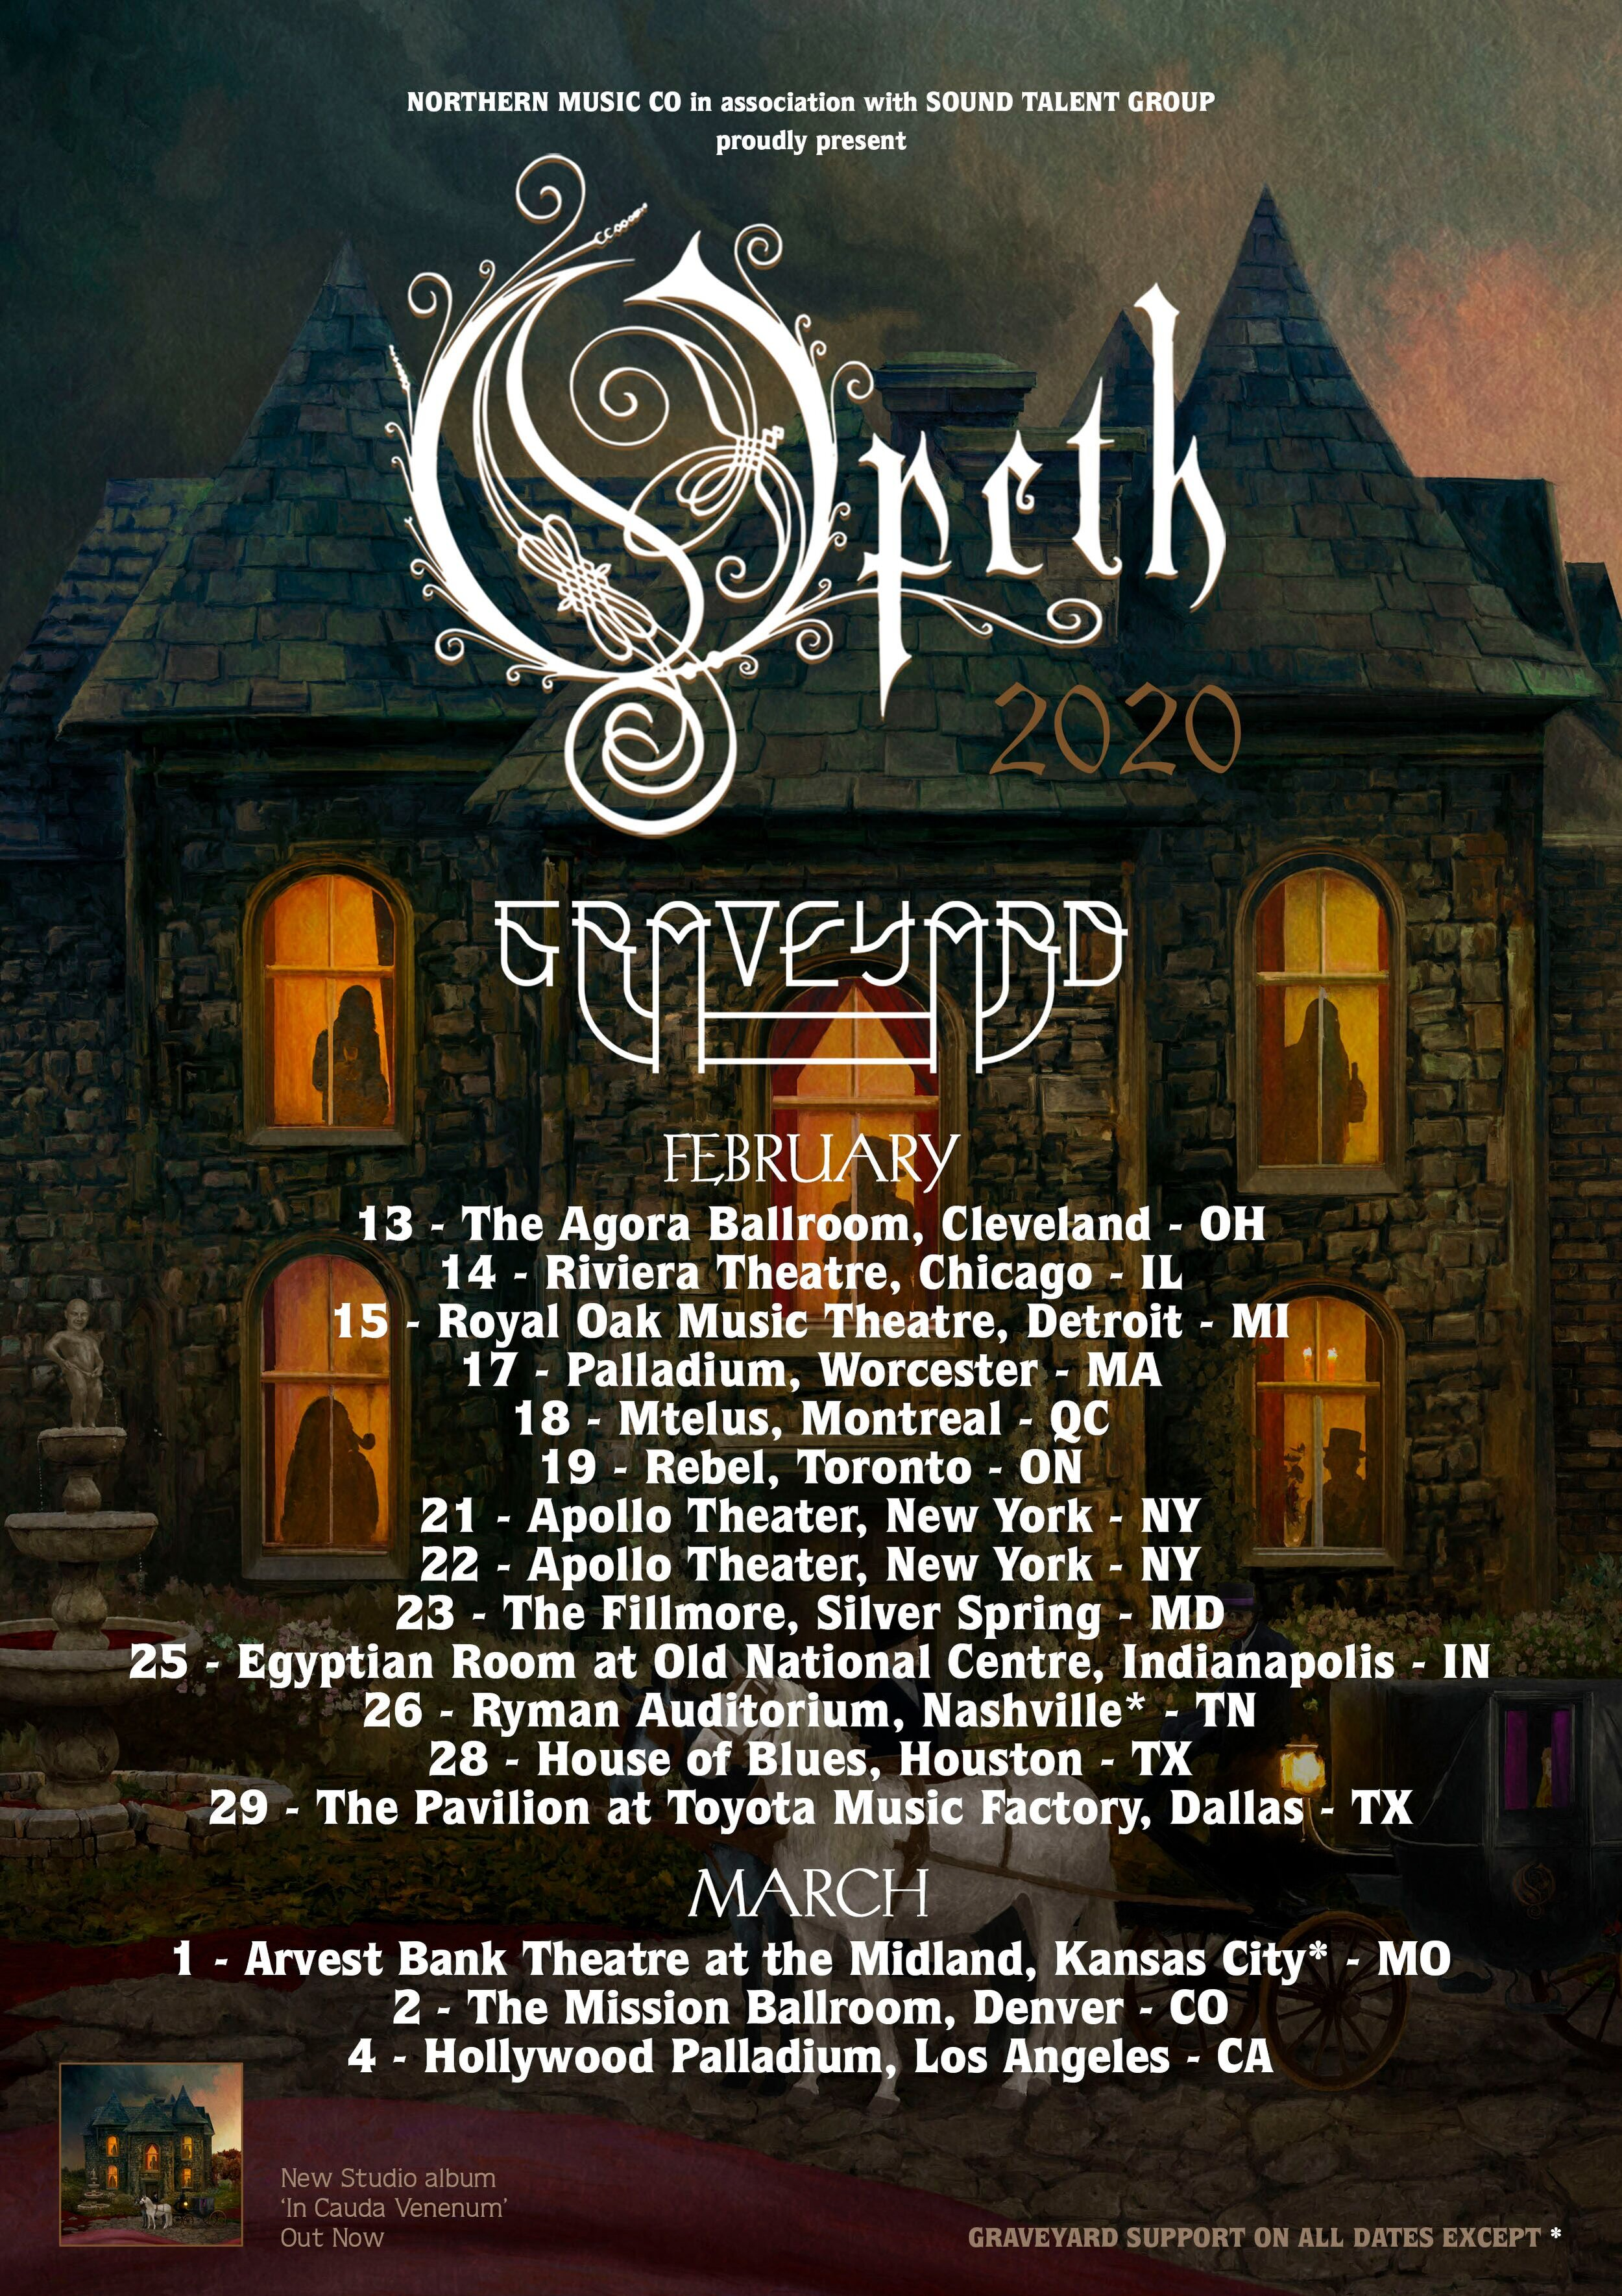 "Swedish prog-metal/rock legends  OPETH  will make their awaited return to North America in 2020 for a winter tour with labelmates  GRAVEYARD . This will be the band's first tour of the U.S.A. and Canada in support of their newly released, critically praised album, ""  In Cauda Venenum , ""   that is available now via  Moderbolaget  /  Nuclear Blast . The dates include two nights at the legendary  Apollo Theater  in New York and performances at the renowned  Ryman Auditorium  in Nashville and at the famed  Hollywood Palladium  in Los Angeles. Tickets will sell fast, beginning 10:00AM Local Time Friday, October 4th at  http://www.opeth.com/tour-dates  .    OPETH 's chief songwriter, vocalist and guitarist  Mikael Åkerfeldt  comments on the tour,  ""Well, after having had the ""In Cauda Venenum"" LP released we're set to start touring in support of it. Right now, I'm at home practicing. Learning new songs and re-learning older songs. It's funny how our music lies dormant in the muscle memory. There are songs I haven't played for years, and there still there somehow. I put together the skeleton of a setlist and looking at it there's some niceties in there. I hope. Hard to tell really. Touring in North America is always a treat. We all collectively look forward to it. Hope you are too!""    OPETH  was recently featured on the cover of   Decibel Magazine's  October issue . For the November issue, the band partnered with the publication to release an exclusive, unreleased track titled "" Cirkeins Riktnin "" for their  Decibel Flexi Series.  Today, the track is streaming at  http://bit.ly/2oqJEq5 .  OPETH's long anticipated 13th album, ""  In Cauda Venenum  ,  ""   arrived this past Friday to an exceptional reaction from fans and critics, earning the band some of the best critiques of their career. Released in both Swedish and English languages, the record features a number of standout tracks like ""  Hjärtat Vet Vad Handen Gör"" / ""Heart In Hand  "" and  ""   Svekets Prins   "" / ""   Dignity   .""     PURCHASE/STREAM  ""IN CAUDA VENENUM"" :   English:    http://geni.us/OpethInCaudaVenenumENG    Swedish:    http://geni.us/OpethInCaudaVenenumSWE      More critics weigh in...   ""On In Cauda Venenum, Opeth have thoroughly revisioned prog rock for the 21st century."" -     AllMusic.com      ""In Cauda Venenum is among Opeth's strongest albums when it comes to the band's progressive sensibilities."" -     ConsequenceOfSound.net      ""In Cauda Venenum is up there with classics like My Arms, Your Hearse and Blackwater Park, death metal or not.""' -     MetalSucks.net      ""The album stands as a bastion of Opeth's impeccable musicality and jaw-dropping scope."" -     RiffMagazine.com      ""this is Opeth, they don't make bad albums"" -     LouderSound.com      ""Opeth continue to write timeless-sounding albums, ripe with grandstanding melody and colourful multi-part movements."" -     TheQuietus.com     More from ""  In Cauda Venenum""  : Watch Video Trailer #1 –  About  "" Hjärtat Vet Vad Handen Gör"" / ""Heart In Hand "" -  https://youtu.be/lBiLa5OersA  Watch Video Trailer #2 – ""  In Cauda Venenum"": The Writing Process   -  https://youtu.be/D0Sxlhr2xuM  Watch Video Trailer #3 – ""  In Cauda Venenum"": The Recording Process   -  https://youtu.be/Rm9DU0KIKd8  Watch Video Trailer #4 –  About   ""Svekets Prins"" / ""Dignity""  -  https://youtu.be/jBm00g7JFcw  Watch Video Trailer #5 –  The Lyrics  -  https://youtu.be/kS3Dqy80tFs  Watch Video Trailer #6 – ""  In Cauda Venenum"" : The Album Title  -  https://youtu.be/qs2-fkPJfTw  Watch Video Trailer #7 –   In Cauda Venenum"" : The Album Artwork  -  https://youtu.be/J5BS661mwrs  Watch Visualizer for "" Hjärtat Vet Vad Handen Gör"" / ""Heart In Hand "" -  https://youtu.be/5Ko4_eO2tiU  Watch Visualizer for  ""Svekets Prins""  -  https://www.youtube.com/watch?v=QcMdA7Xs8jE  Watch Visualizer for "" Dignity"" -  https://www.youtube.com/watch?v=GF5FXYmBrc4    OPETH  will tour Europe, Japan and Australia through the end of the year. Dates are listed below and tickets are on sale now at  www.opeth.com/tour-dates   Purchase ""  In Cauda Venenum""   in various formats, here:  www.opeth.com/stores"